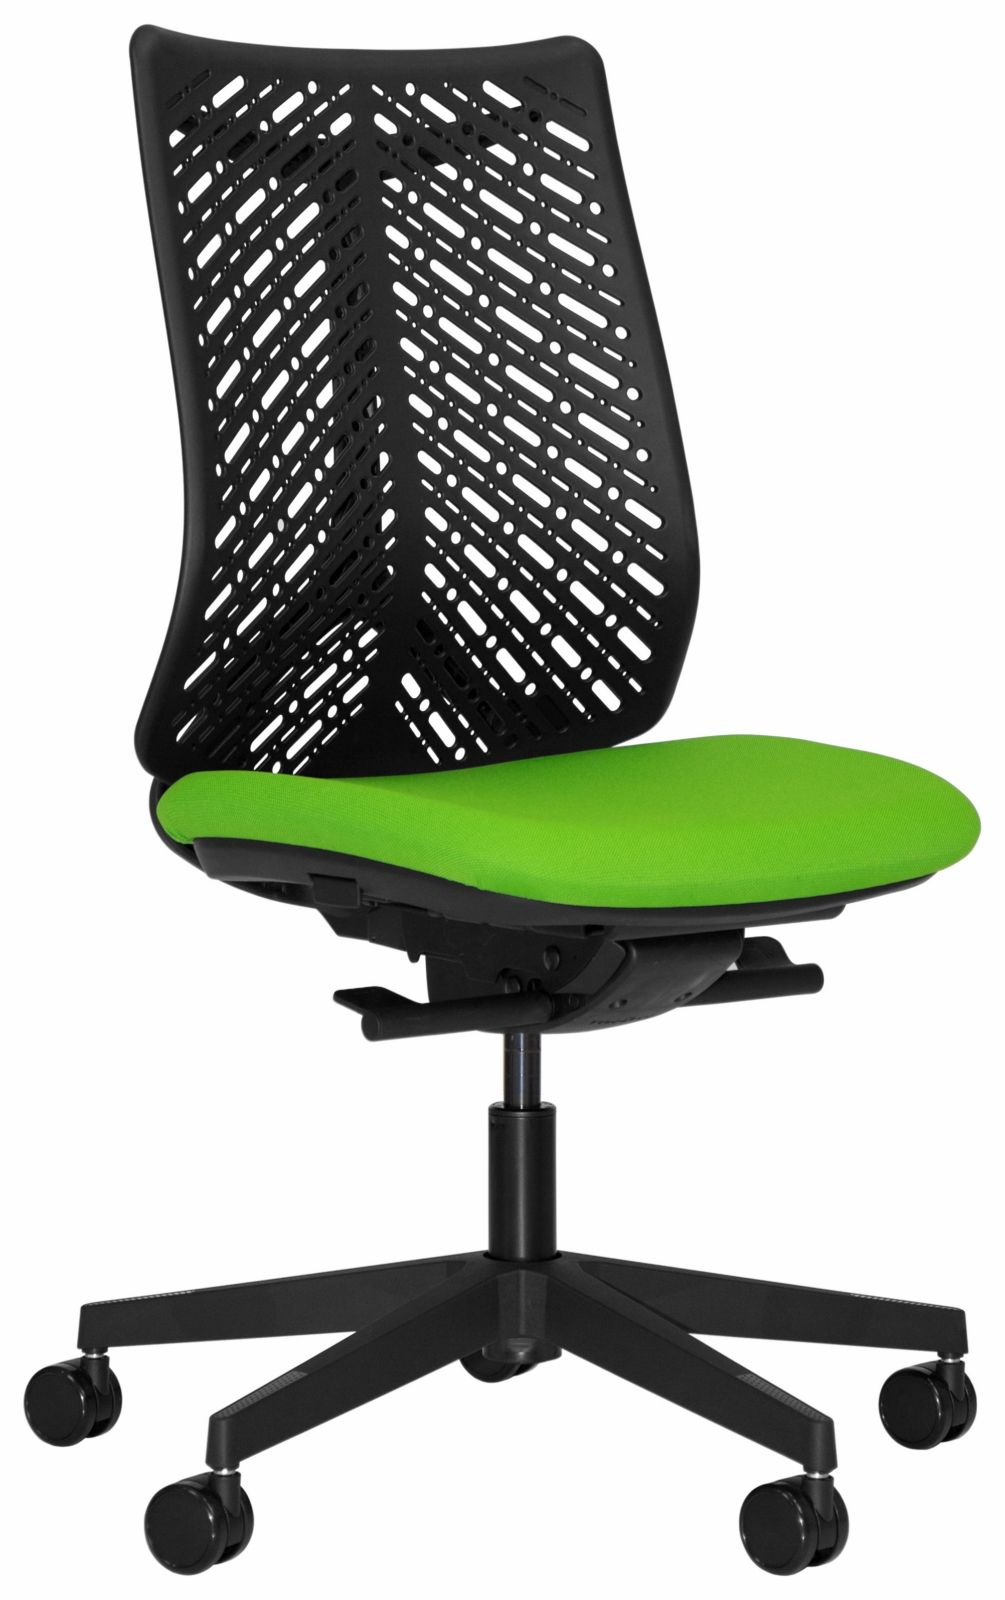 Airflex task chair black base without support arms by